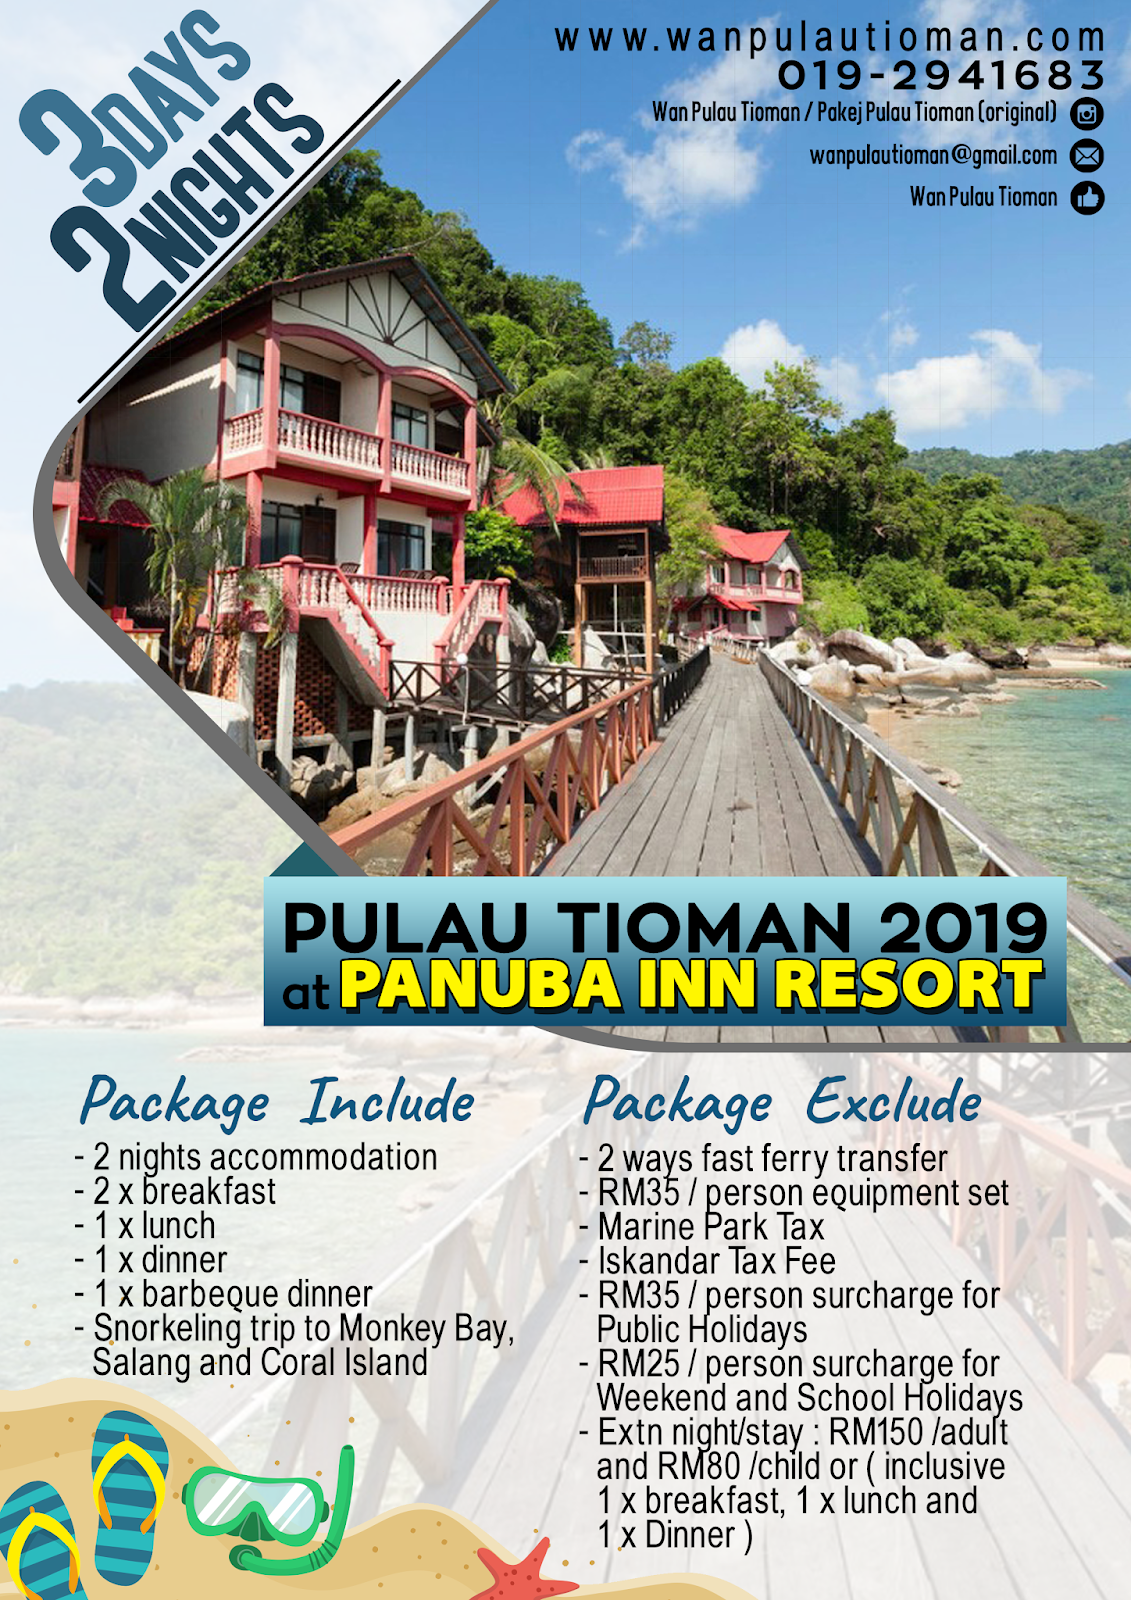 2019 3 Day 2 Nights at Panuba Inn Resort - Pulau Tioman Malaysia